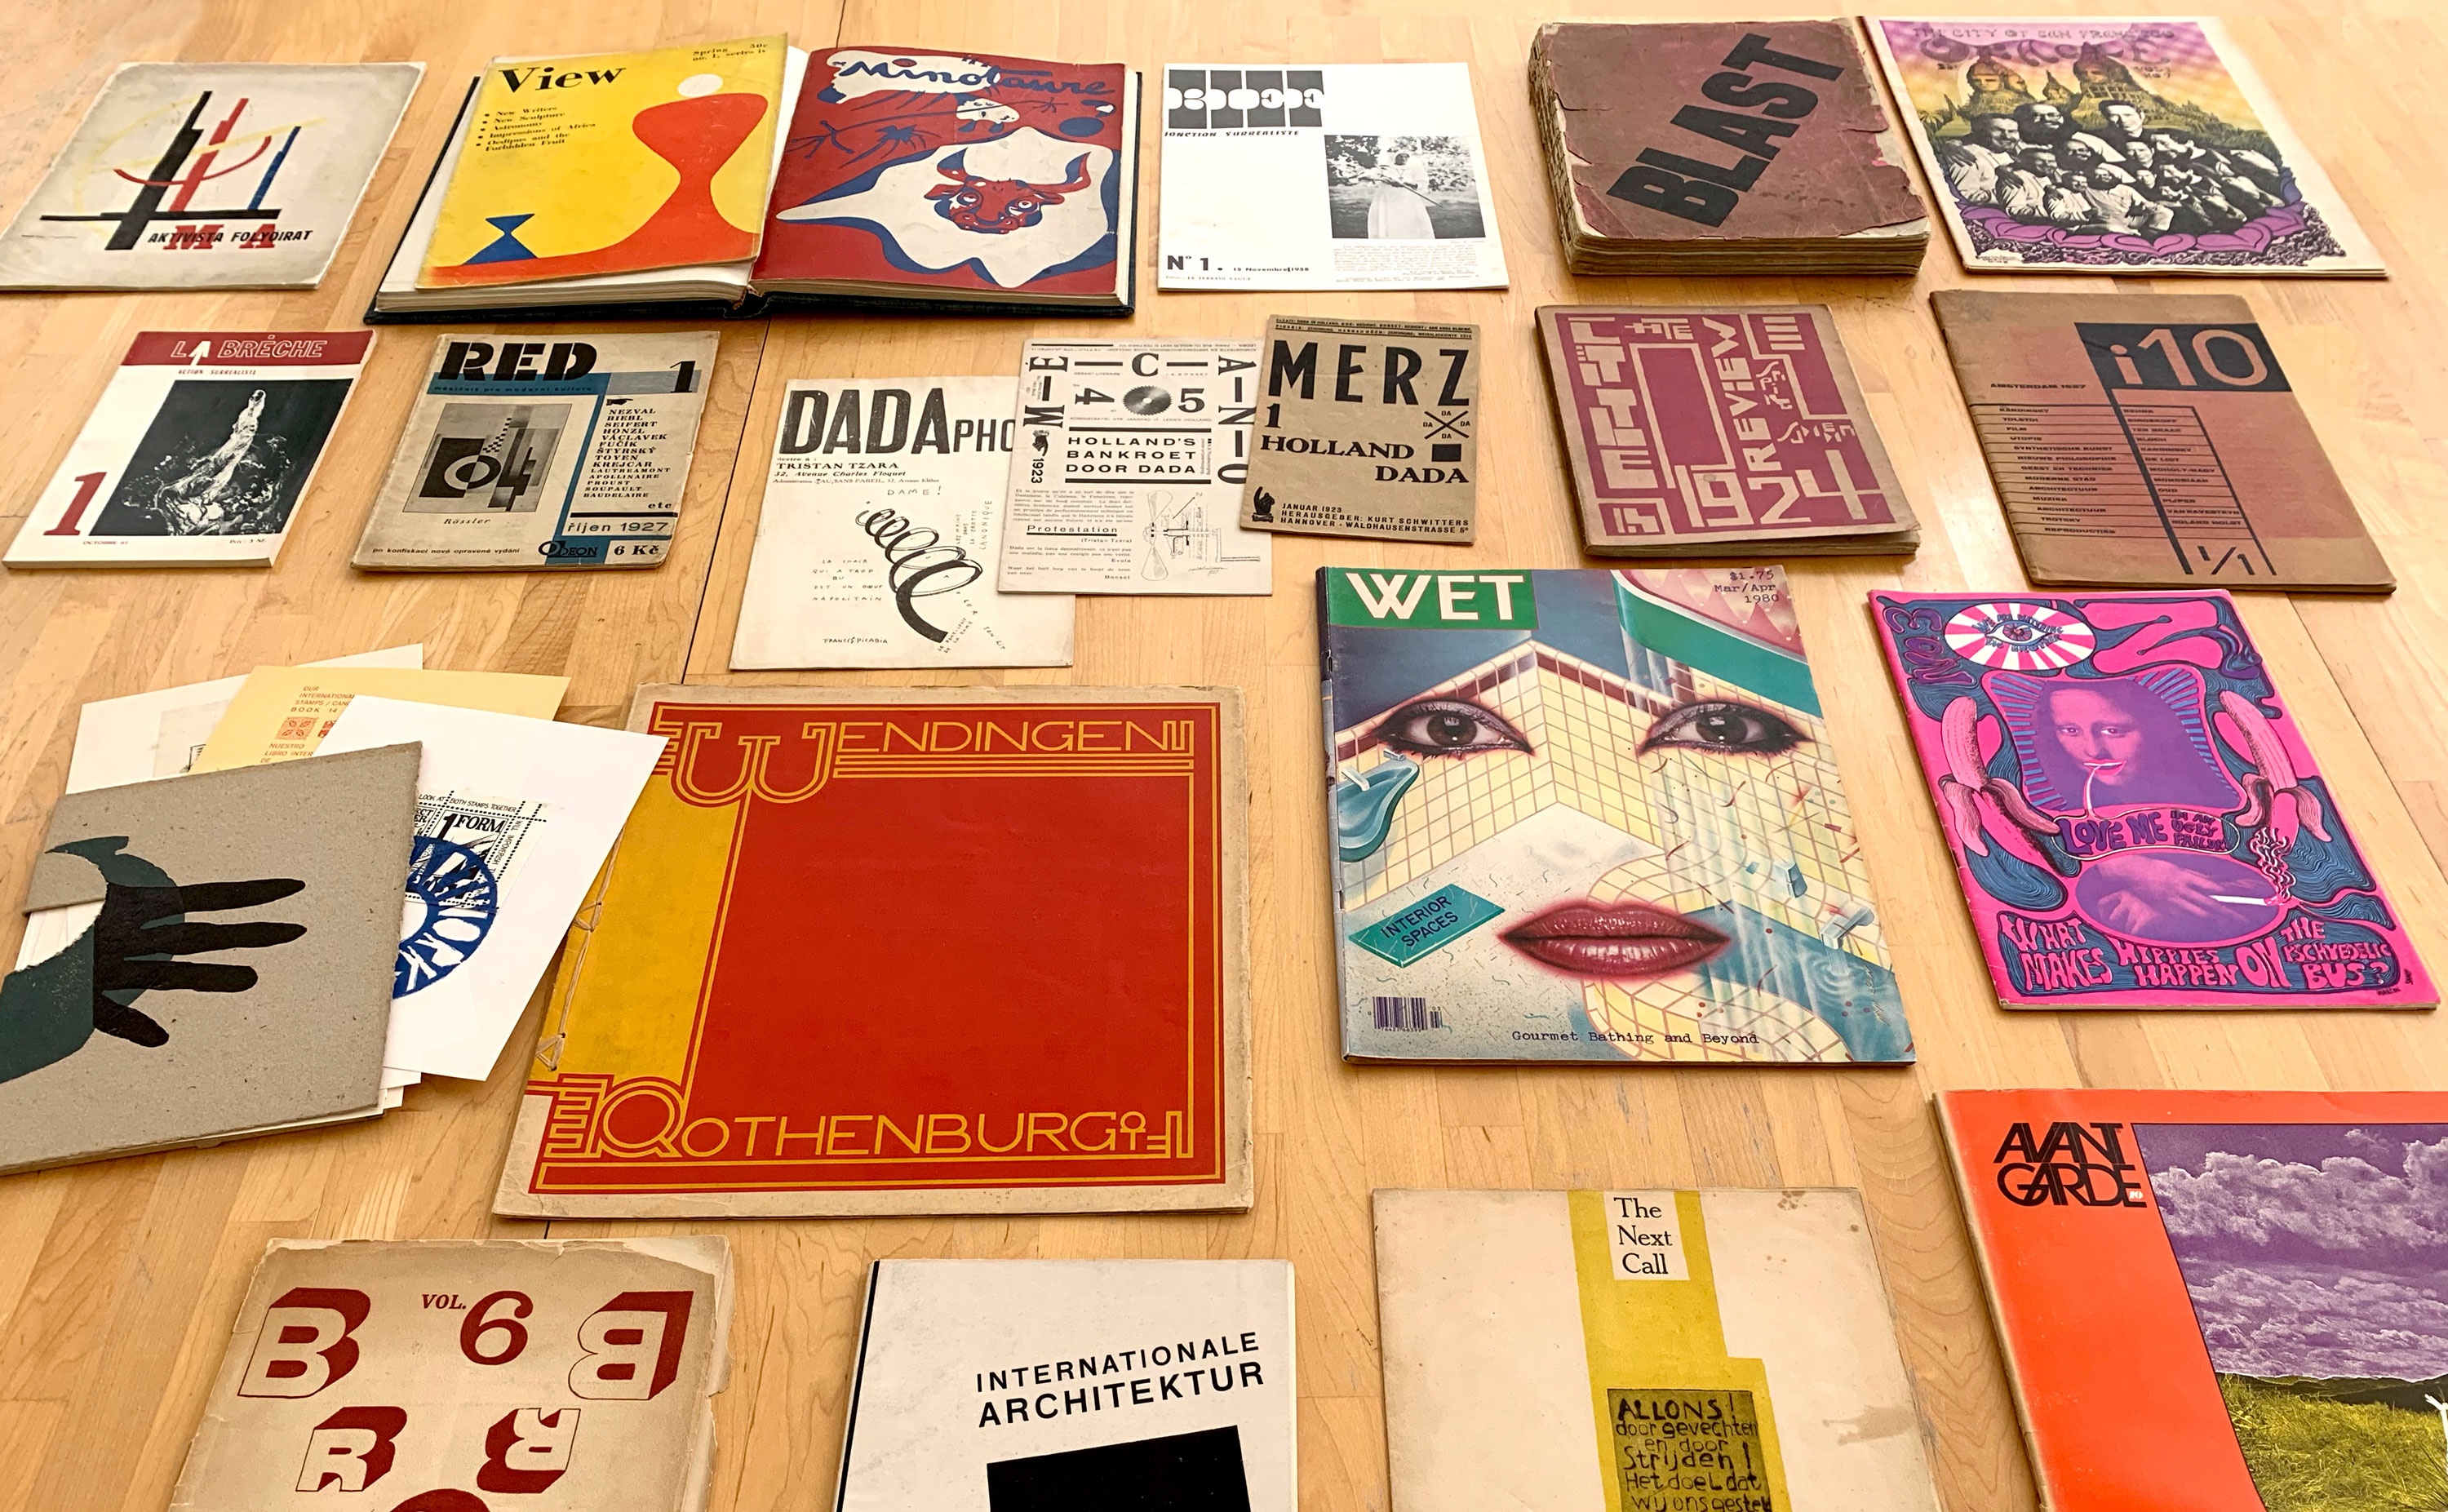 A sampling of avant-garde periodicals at Letterform Archive